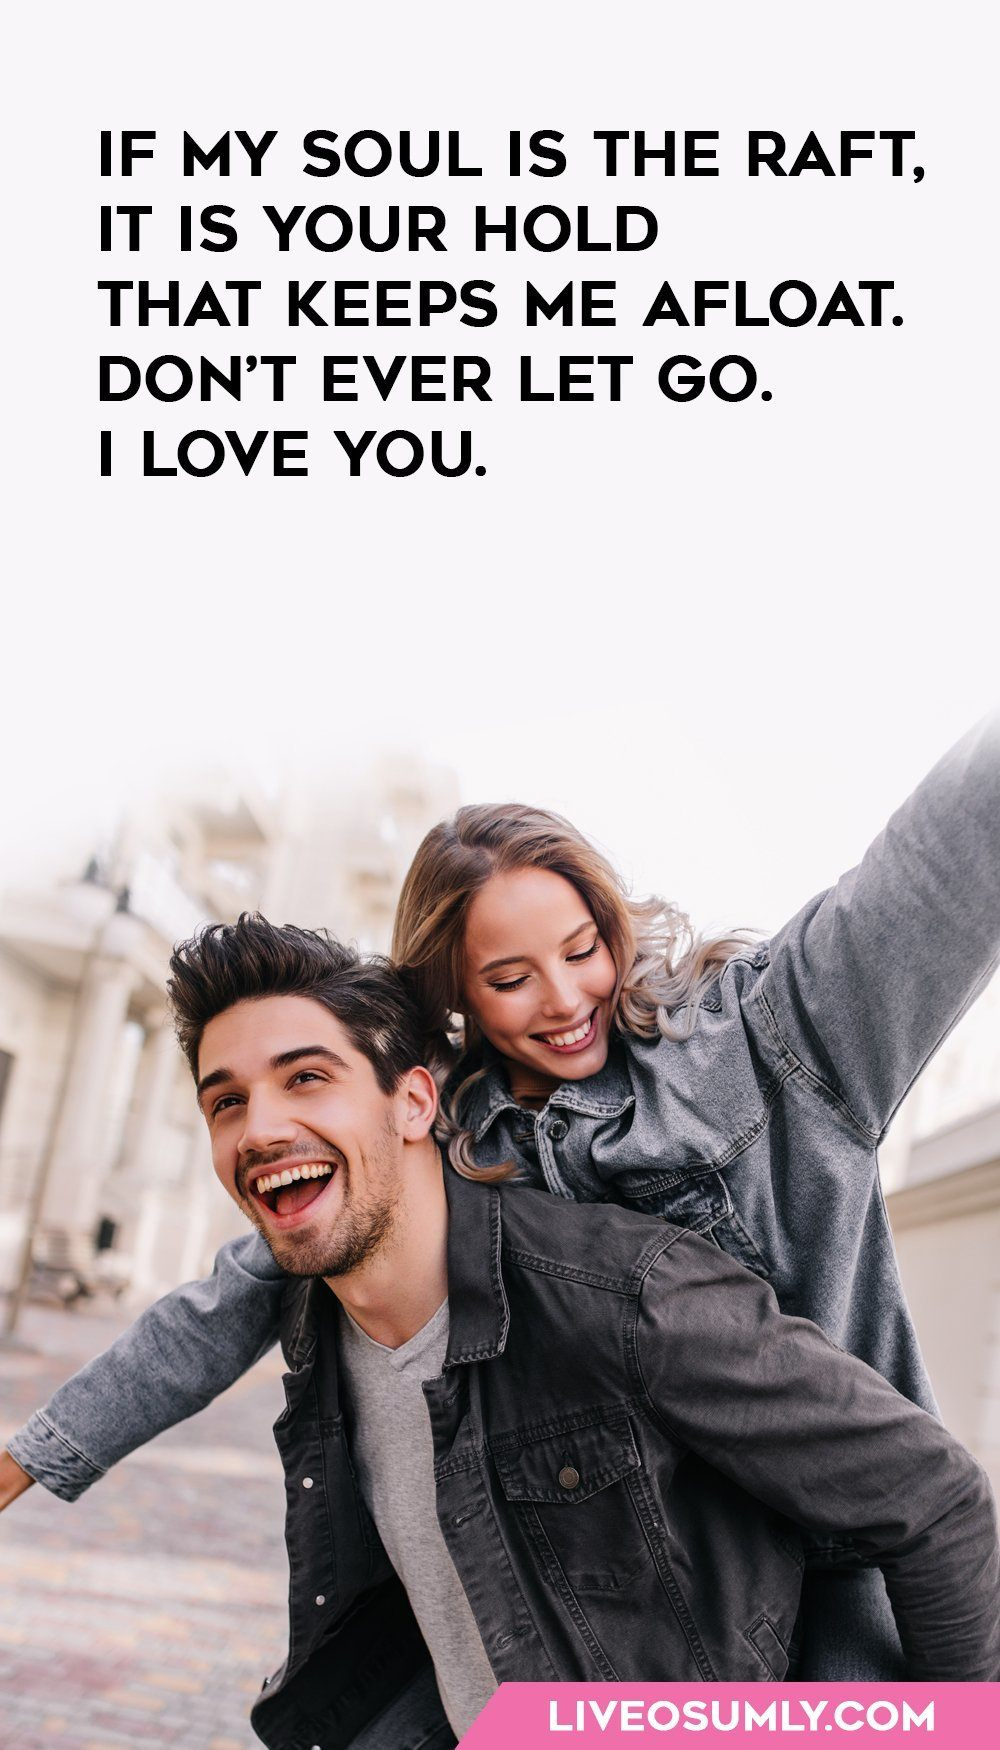 8. I love you quote